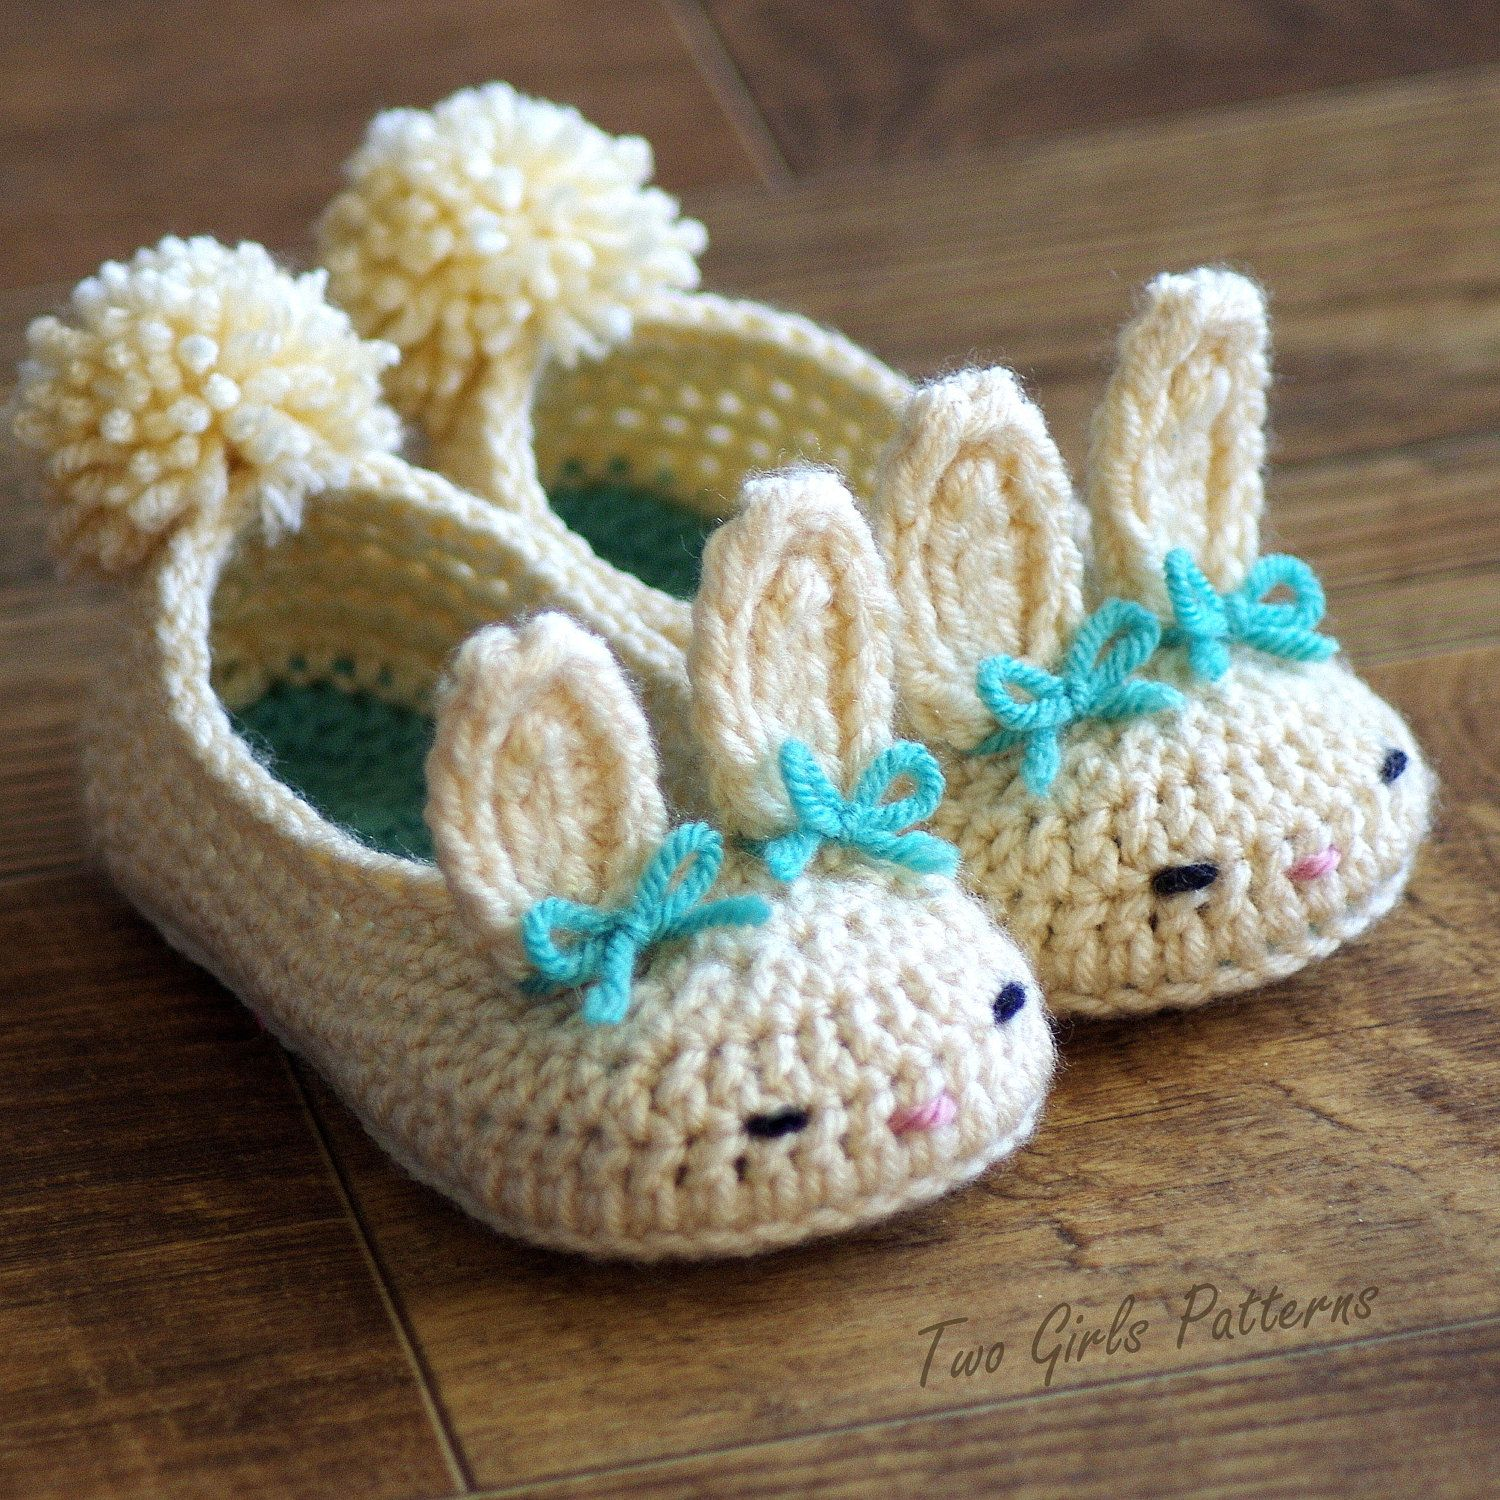 Bunny slippers crochet pattern childrens shoe sizes 4 9 all bunny slippers crochet pattern childrens shoe sizes 4 9 all 6 sizes included bankloansurffo Choice Image